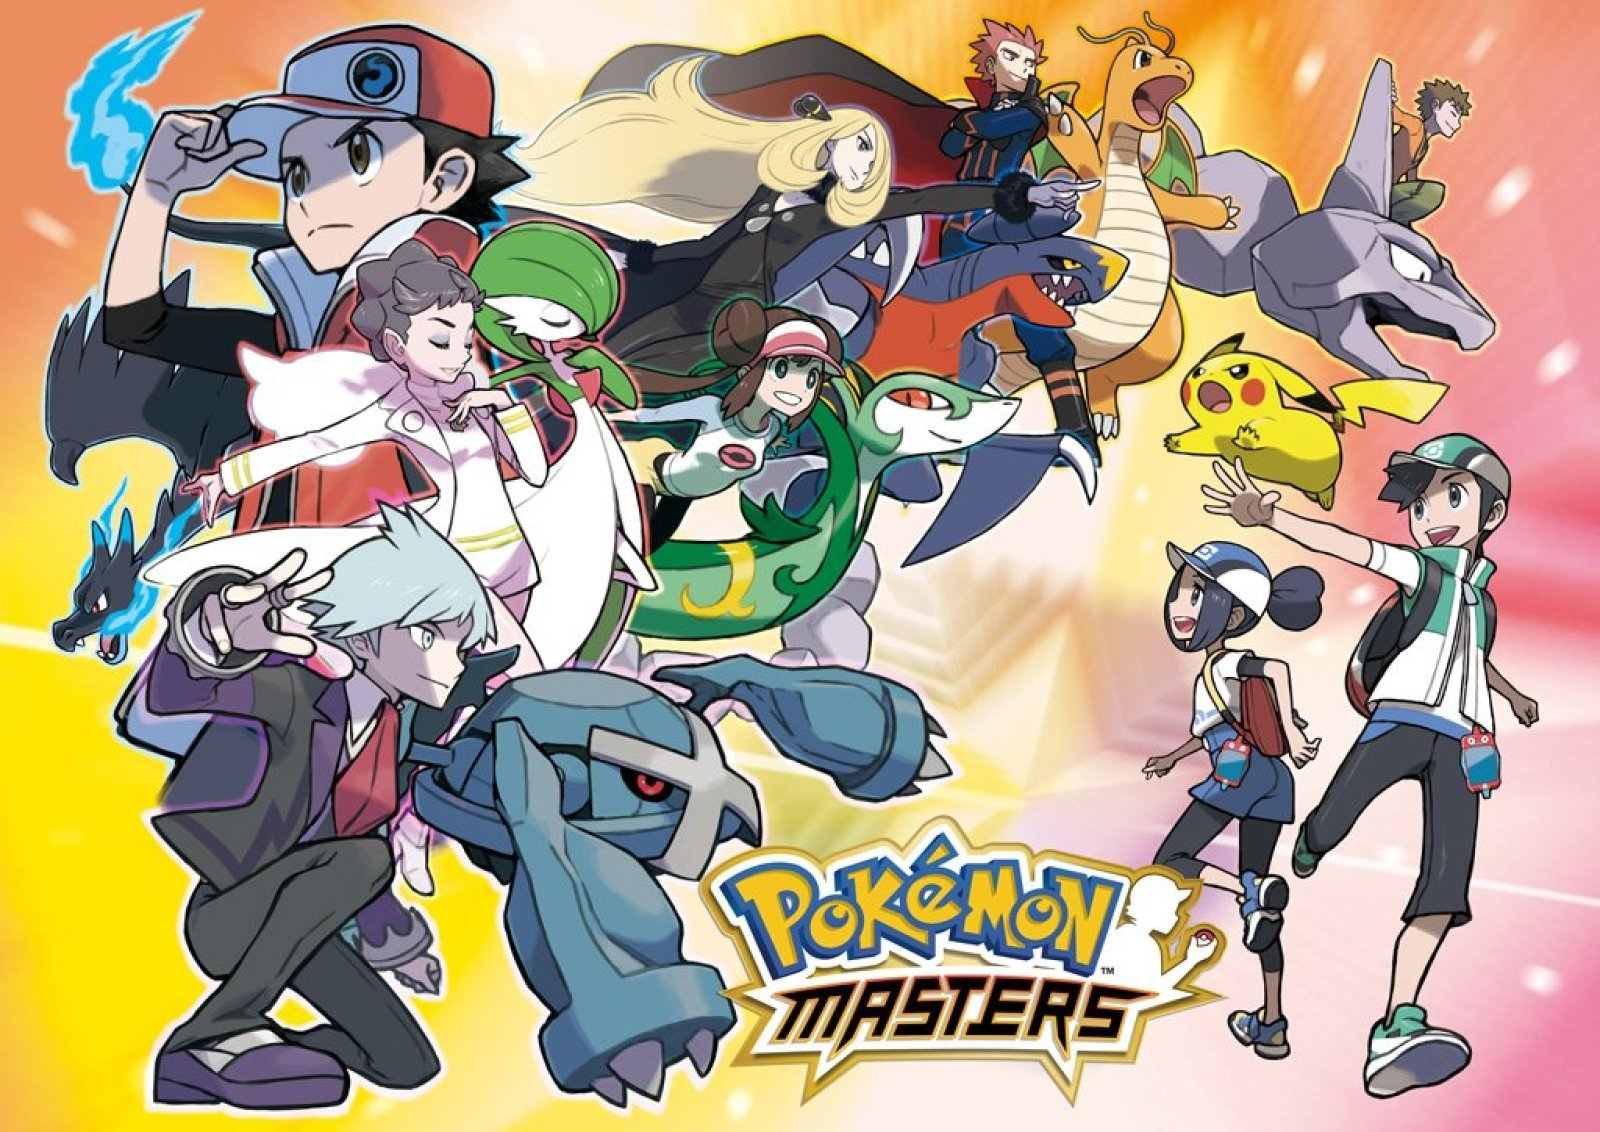 New Content Coming To Pokemon Masters Including Some New Linked Pairs Fresh From Alola And Pokemon Red/Blue